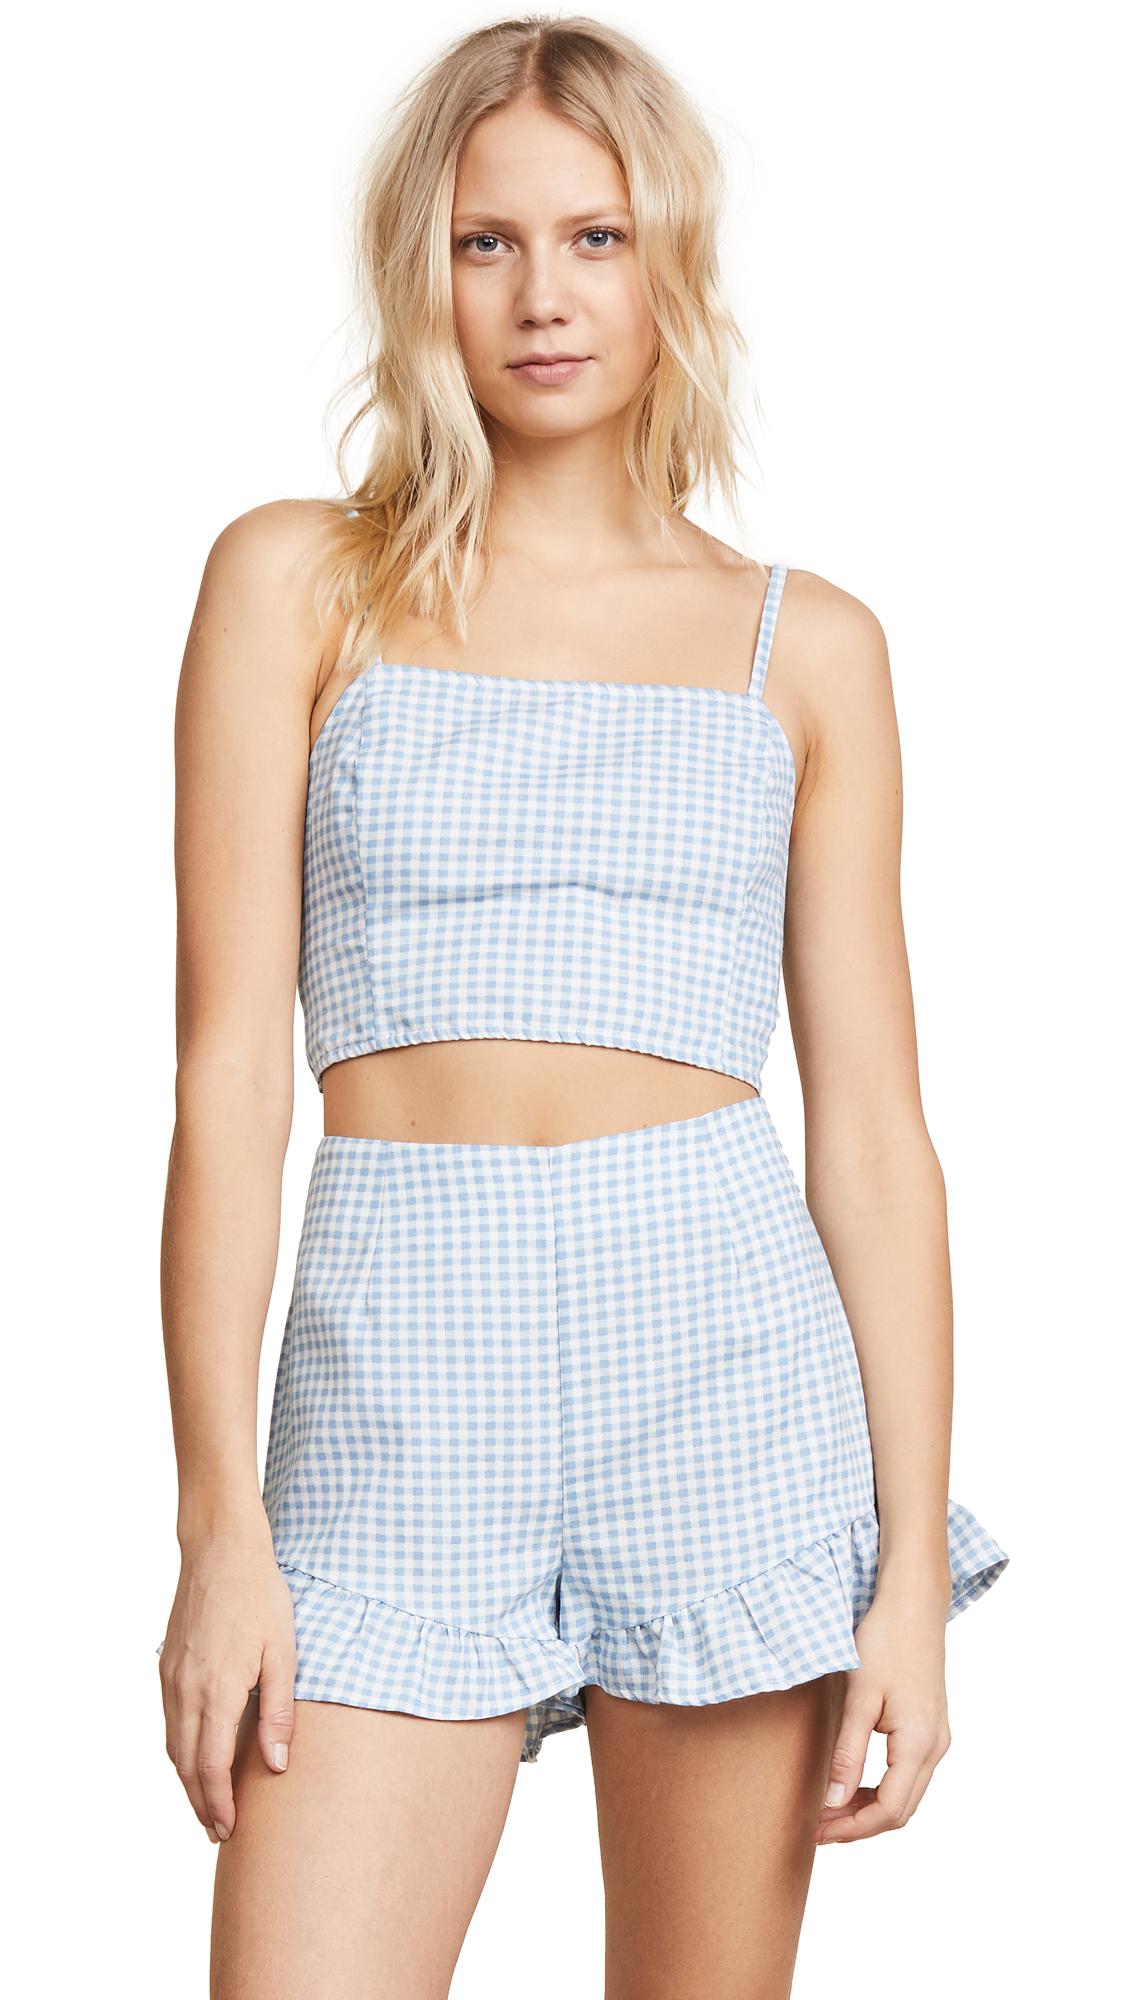 MINKPINK Toto Gingham Top in Chambray/White